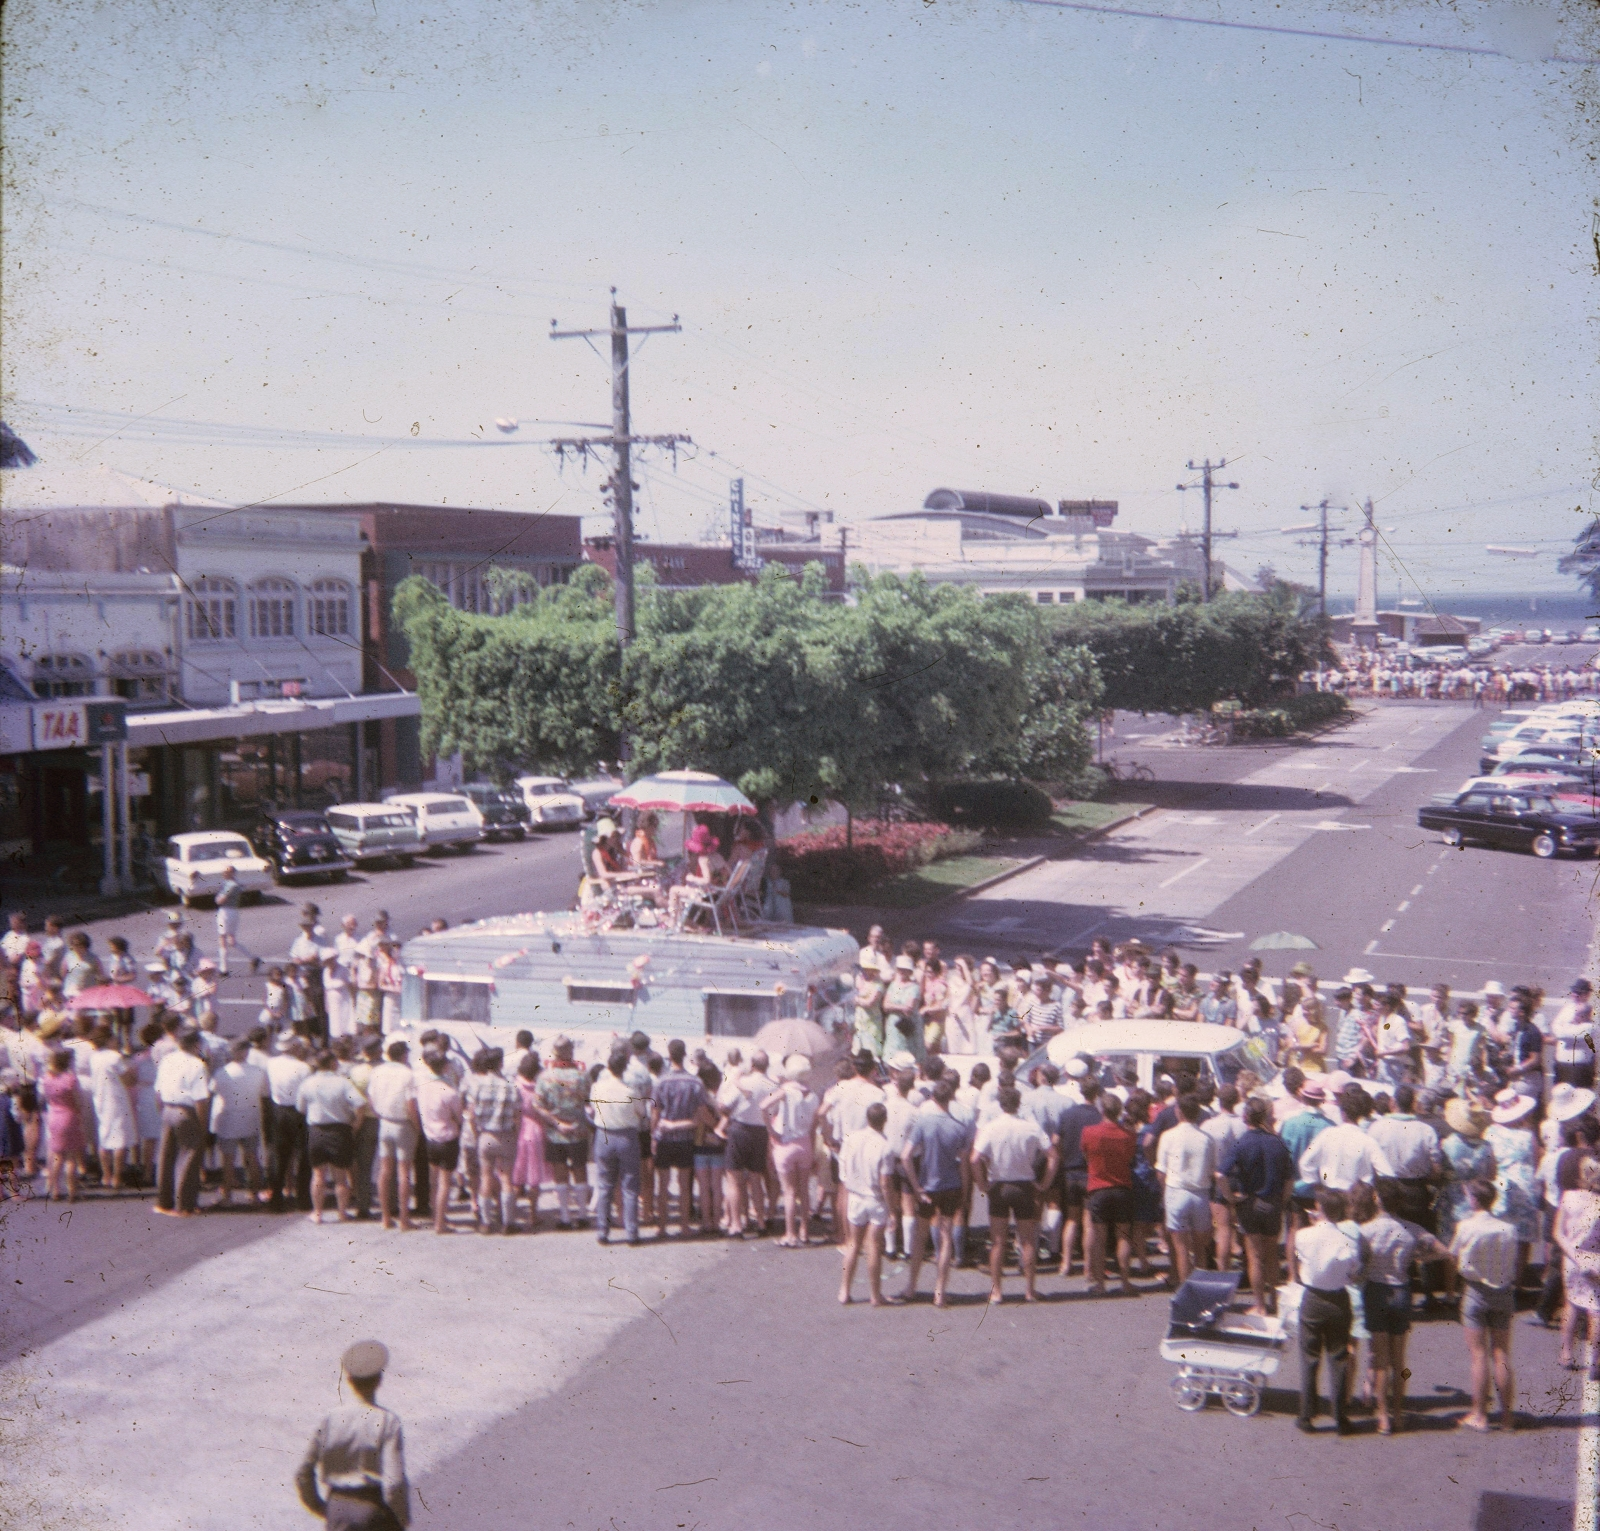 The Fun in the Sun parade, looking up Shields Street, Cairns